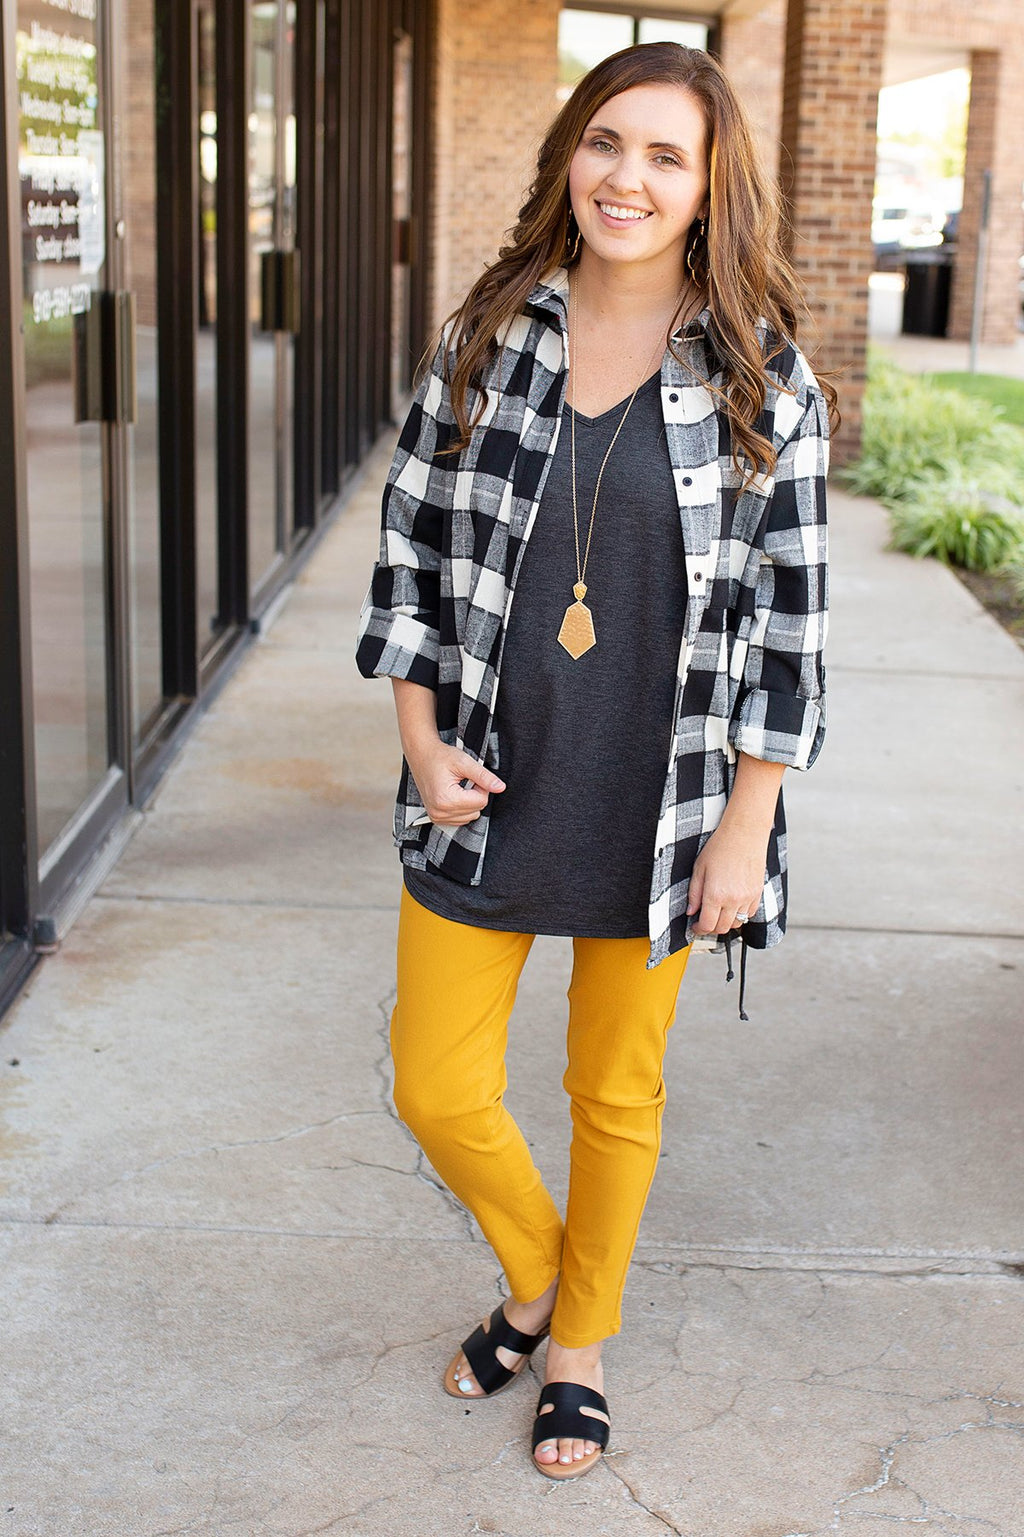 black and white checkered plaid flannel top